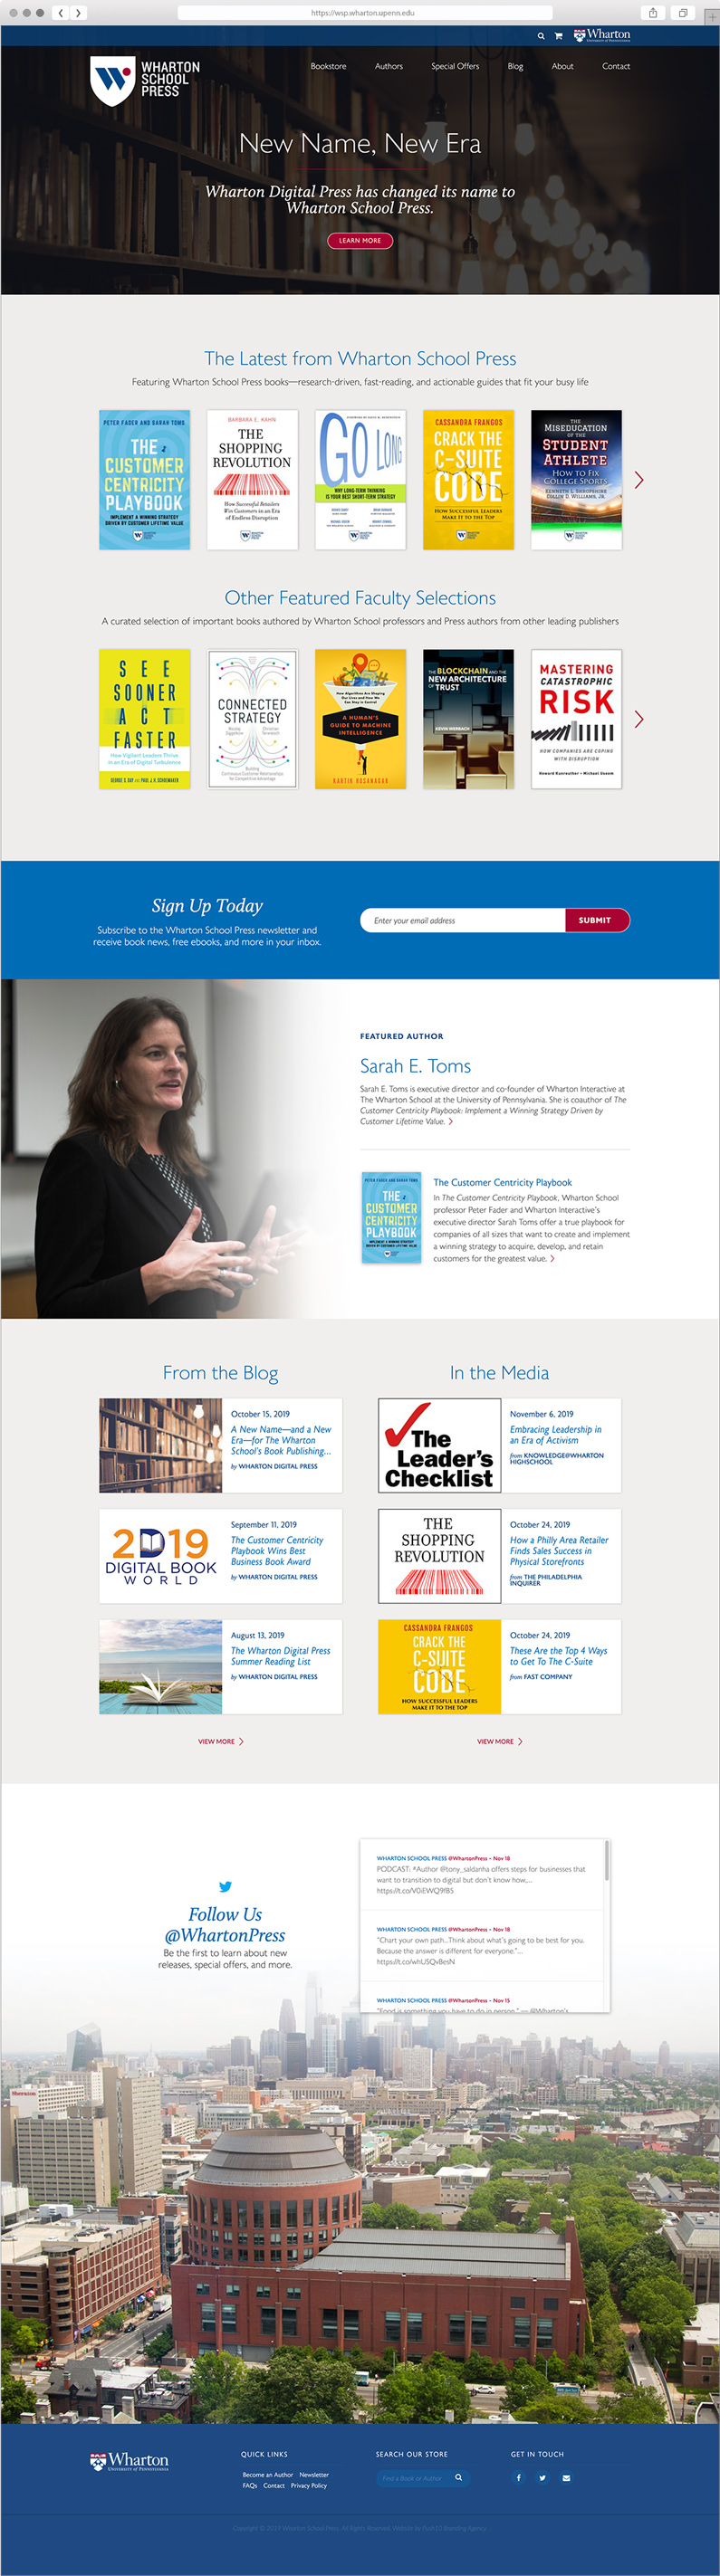 Website user interface design for The Wharton School of the University of Pennsylvania